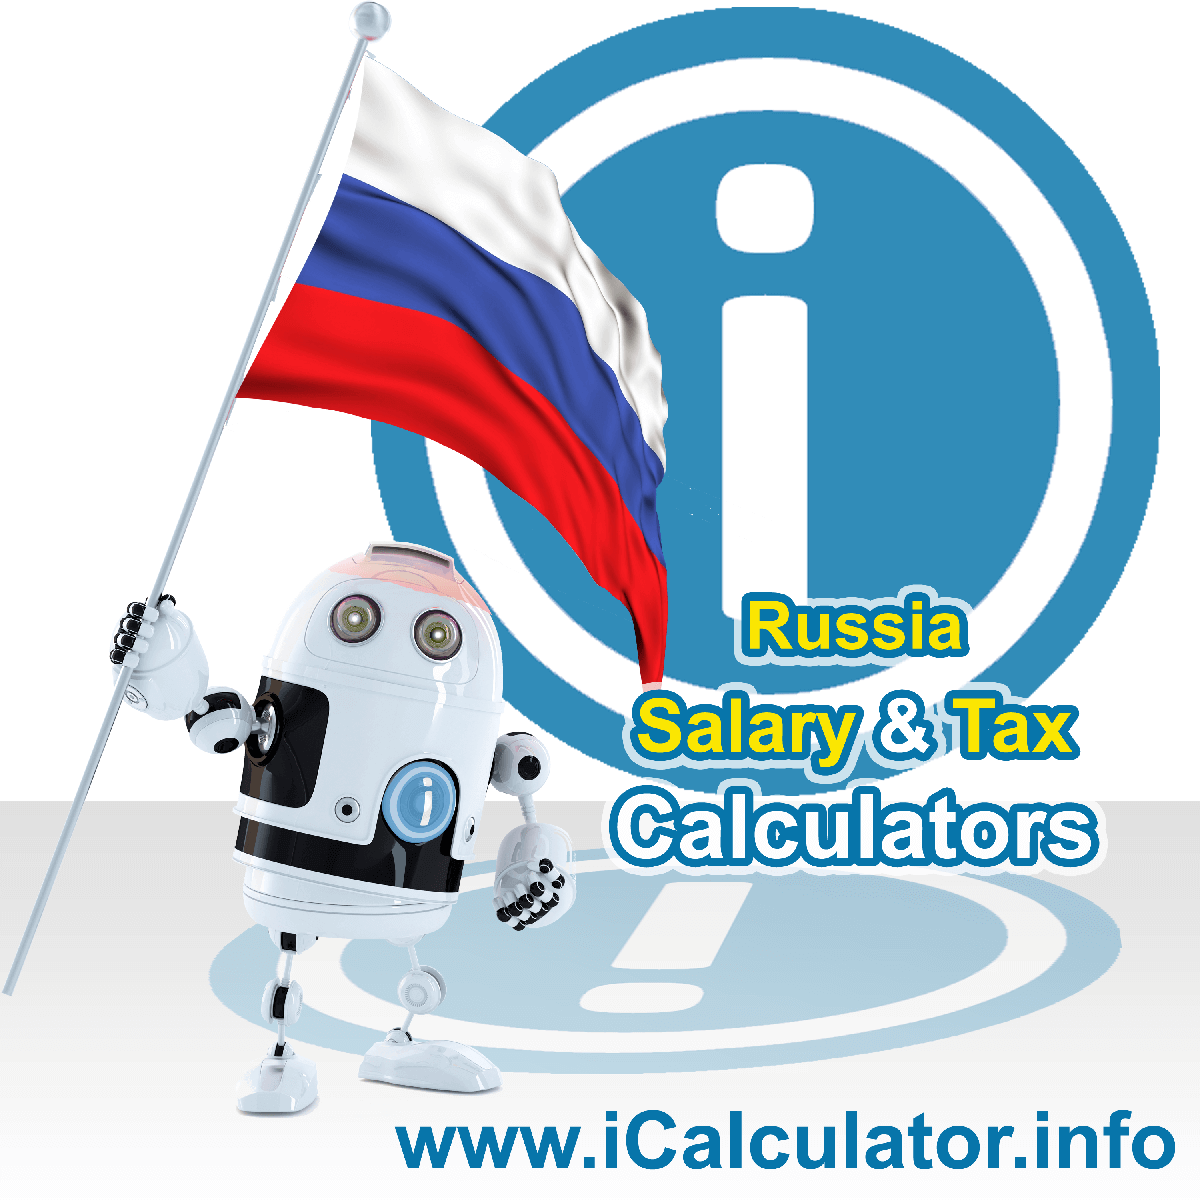 Russia Salary Calculator. This image shows the Russiaese flag and information relating to the tax formula for the Russia Tax Calculator